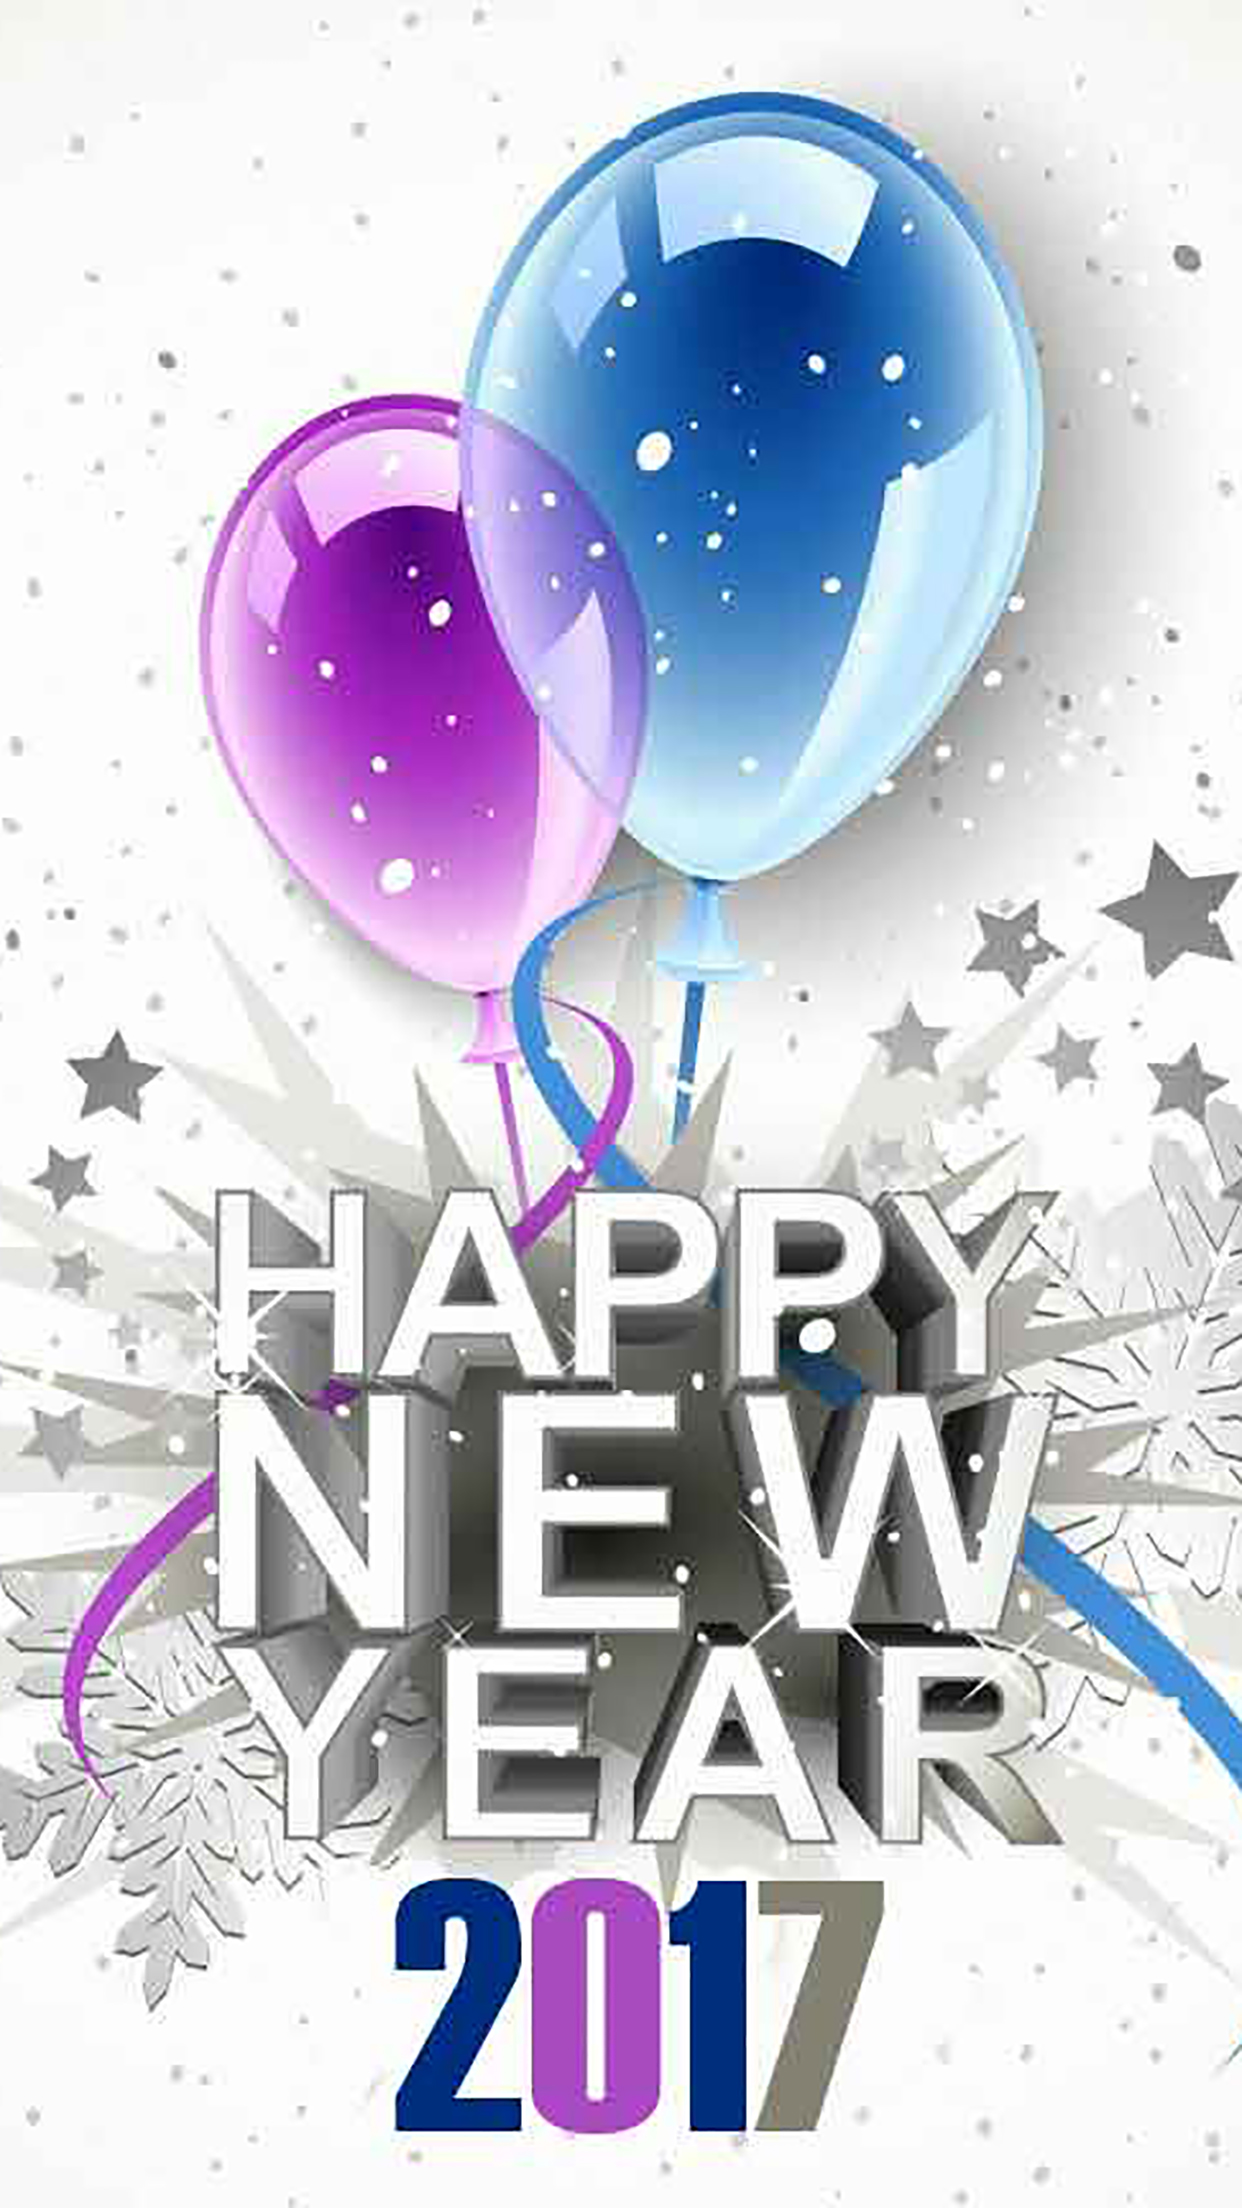 Happy New Year 1 3Wallpapers iPhone Parallax Les 3Wallpapers iPhone du jour (01/01/2017)